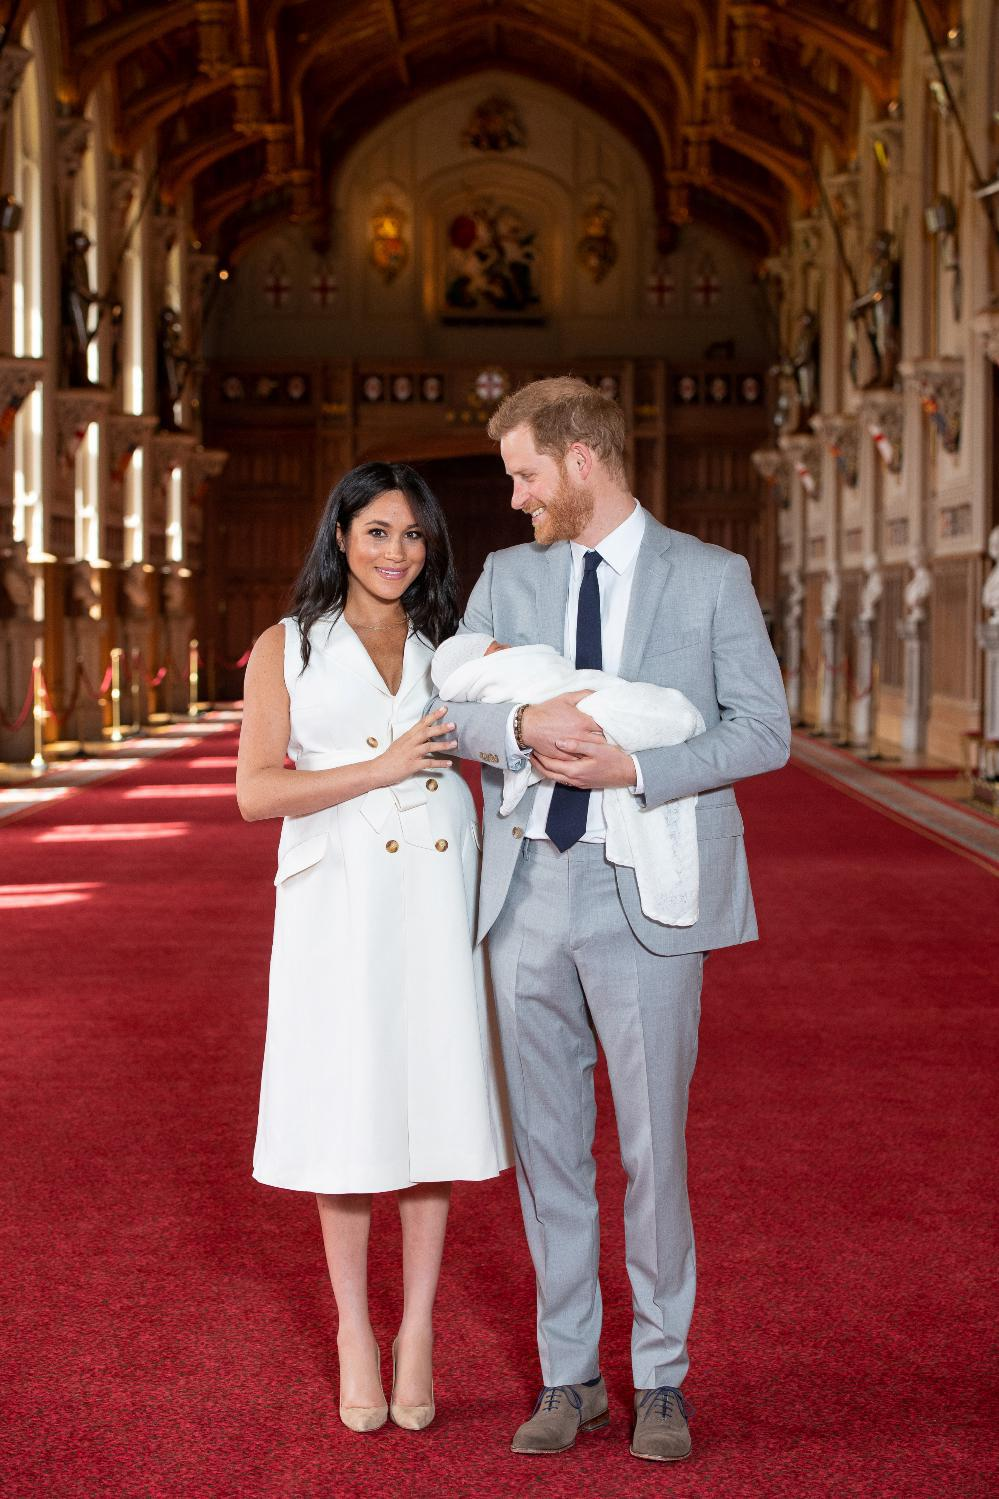 2019-05-08T114720Z_1021659878_RC1404DACA80_RTRMADP_3_BRITAIN-ROYALS-BABY_resized_resized